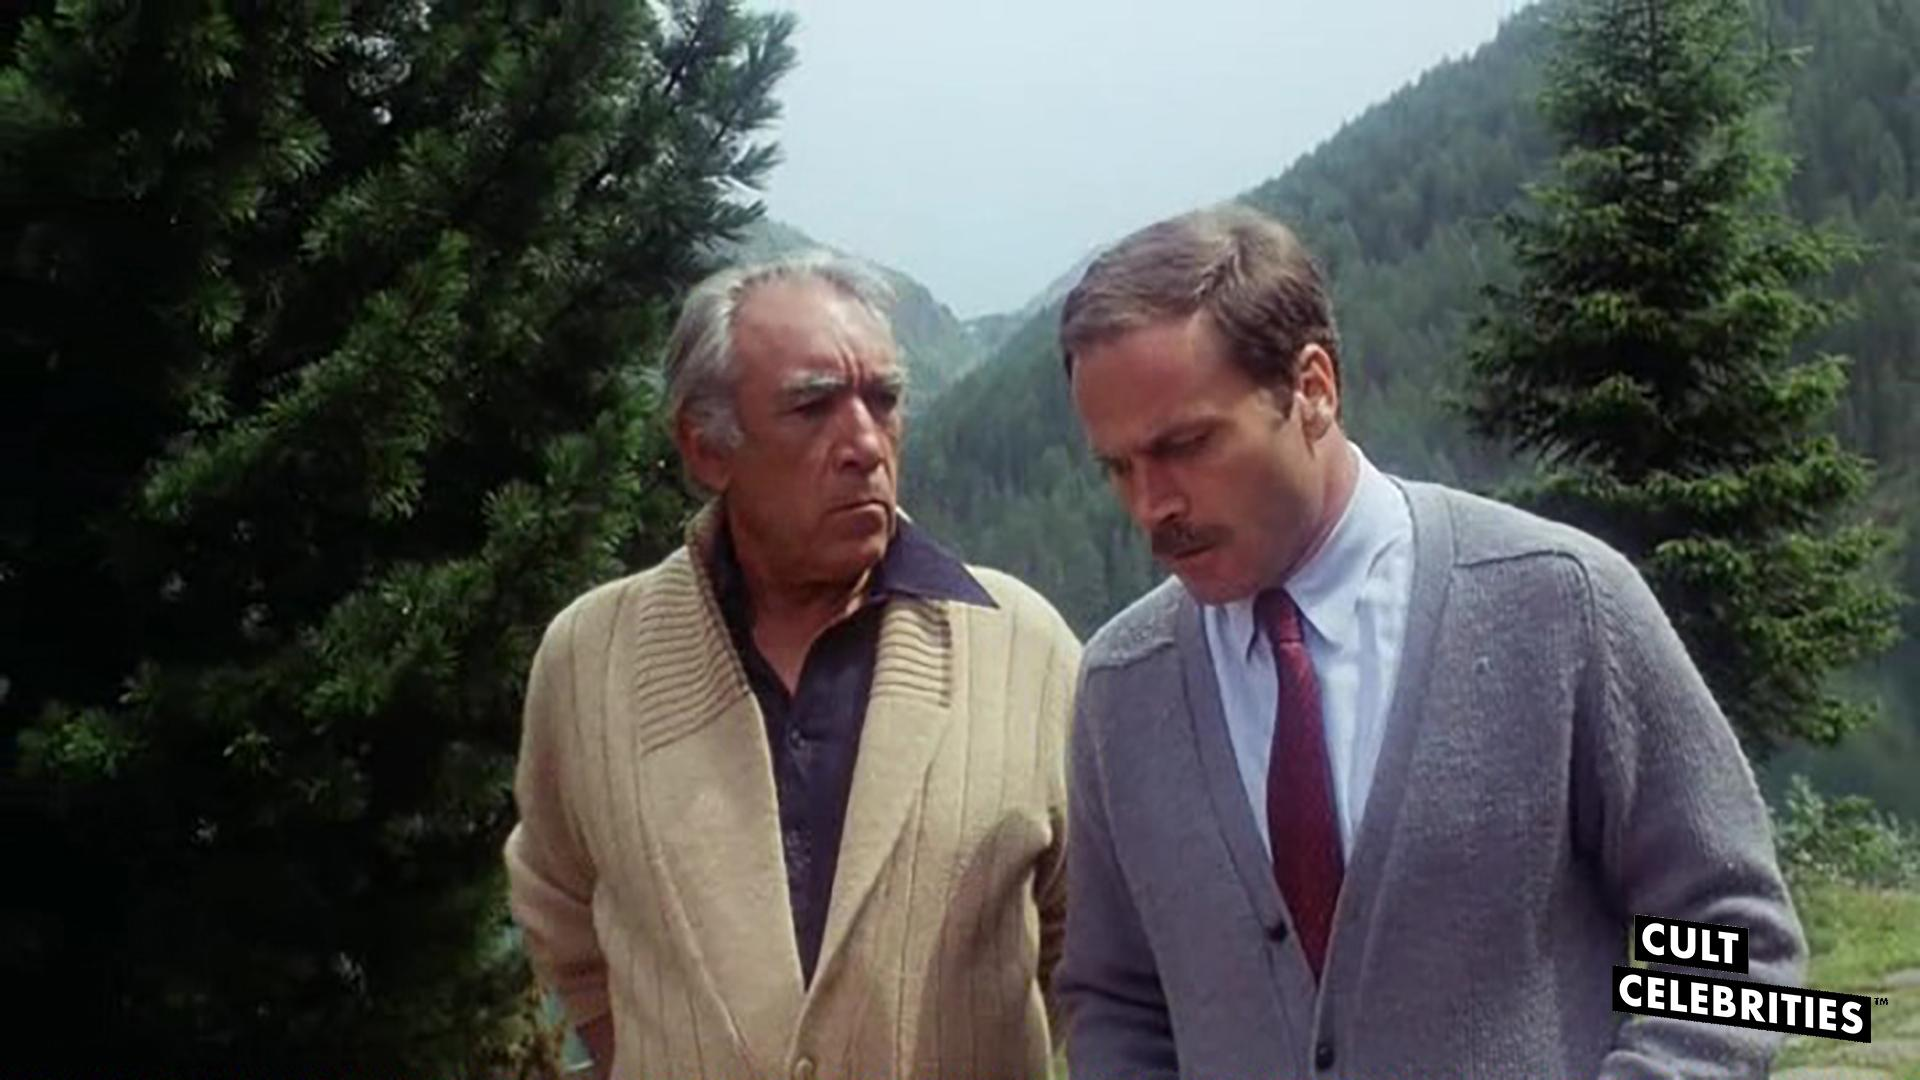 Anthony Quinn and Franco Nero in The Salamander (1981)